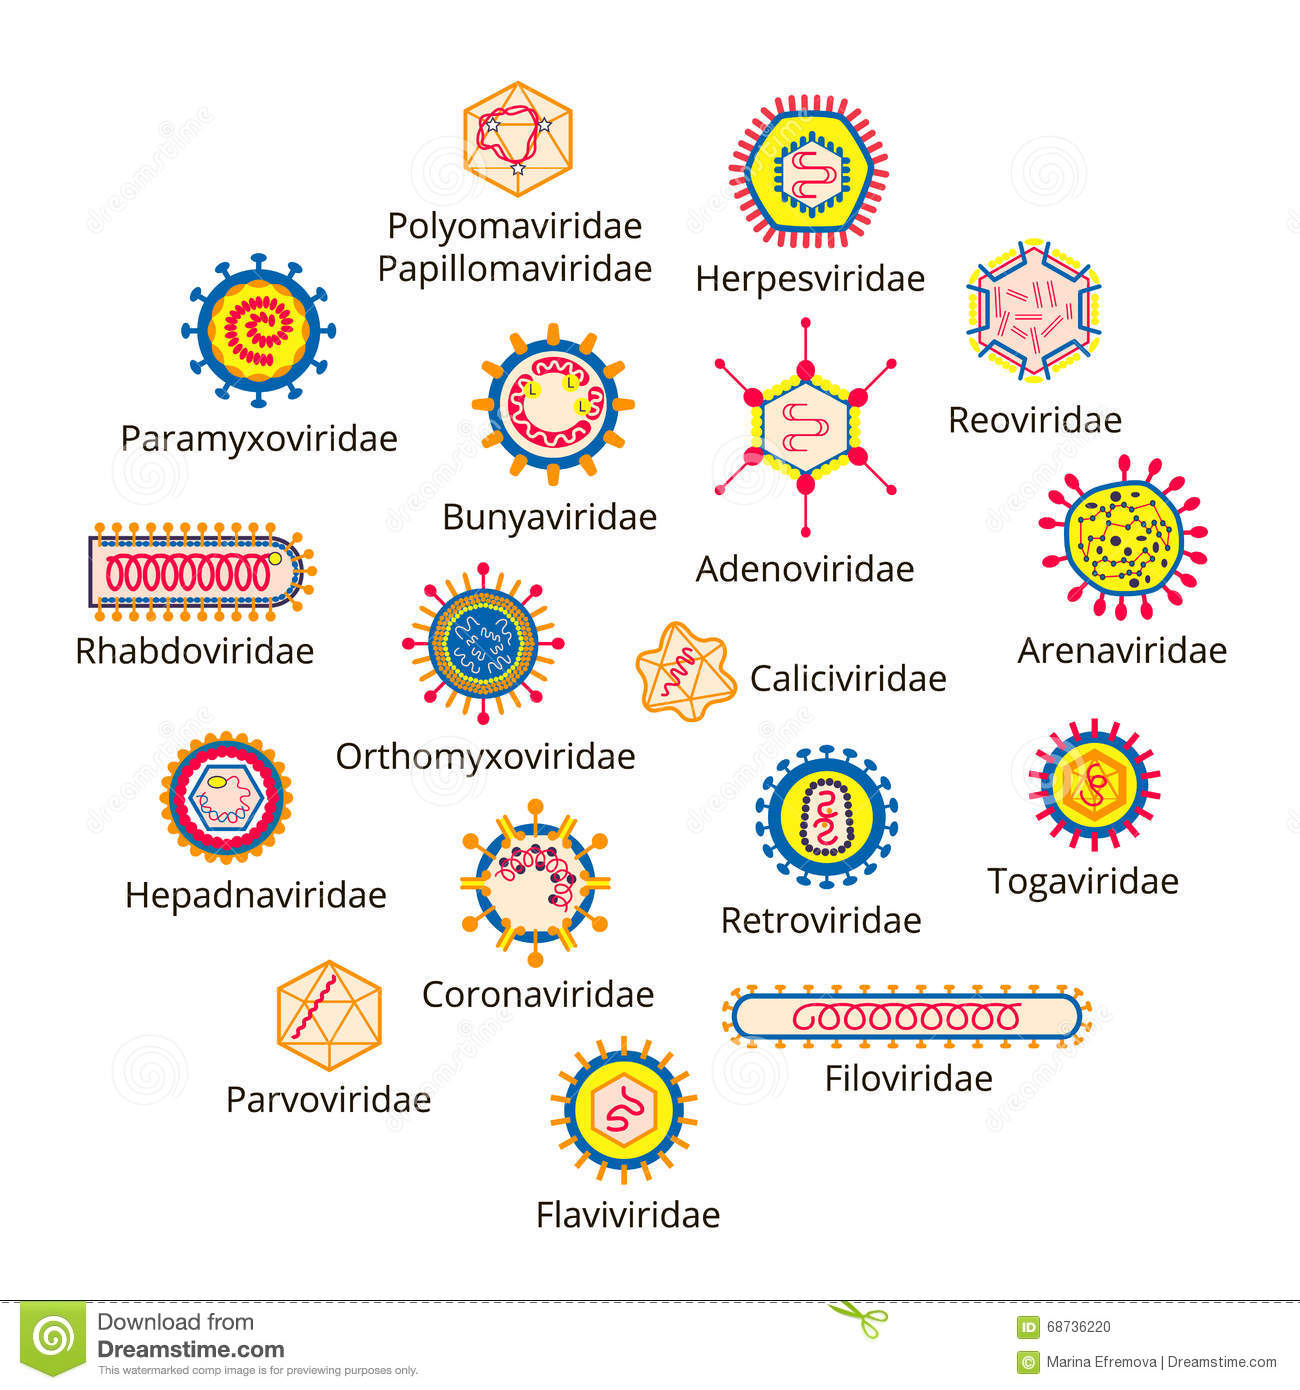 Classification of viruses.